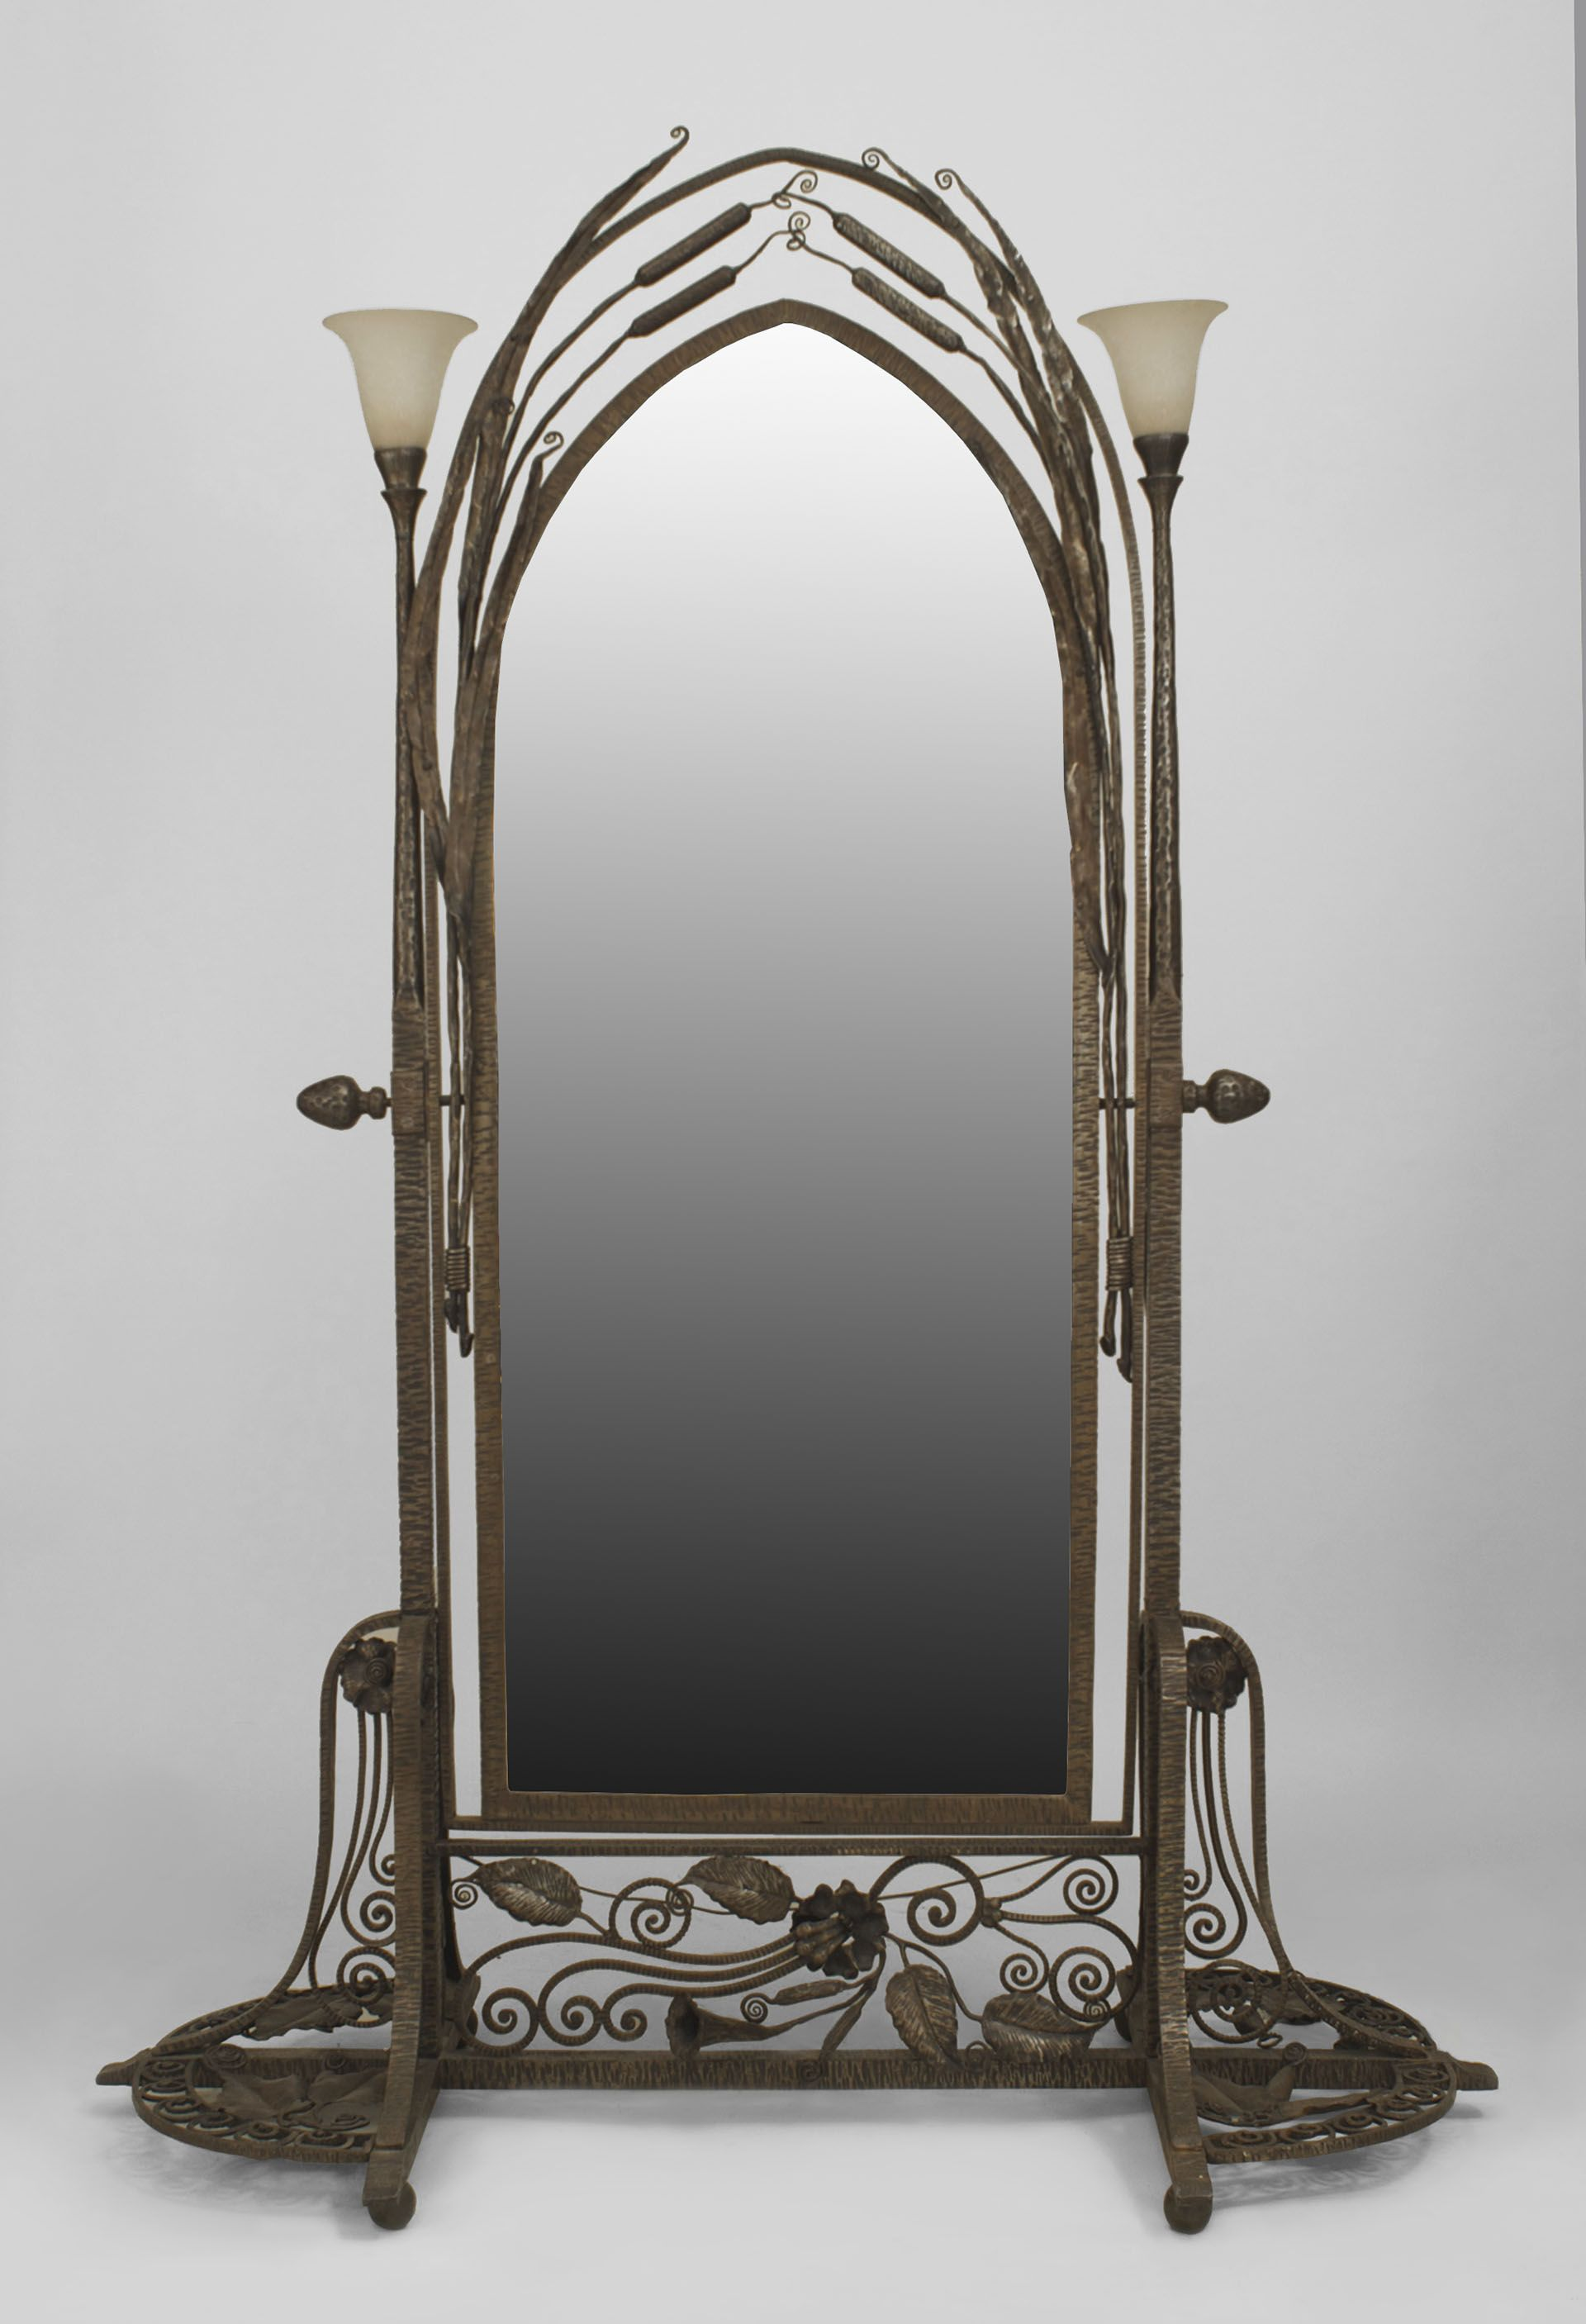 French Art Deco Wrought Iron Cheval Mirror With Arch Design Beveled Gl Surrounded By Cattails